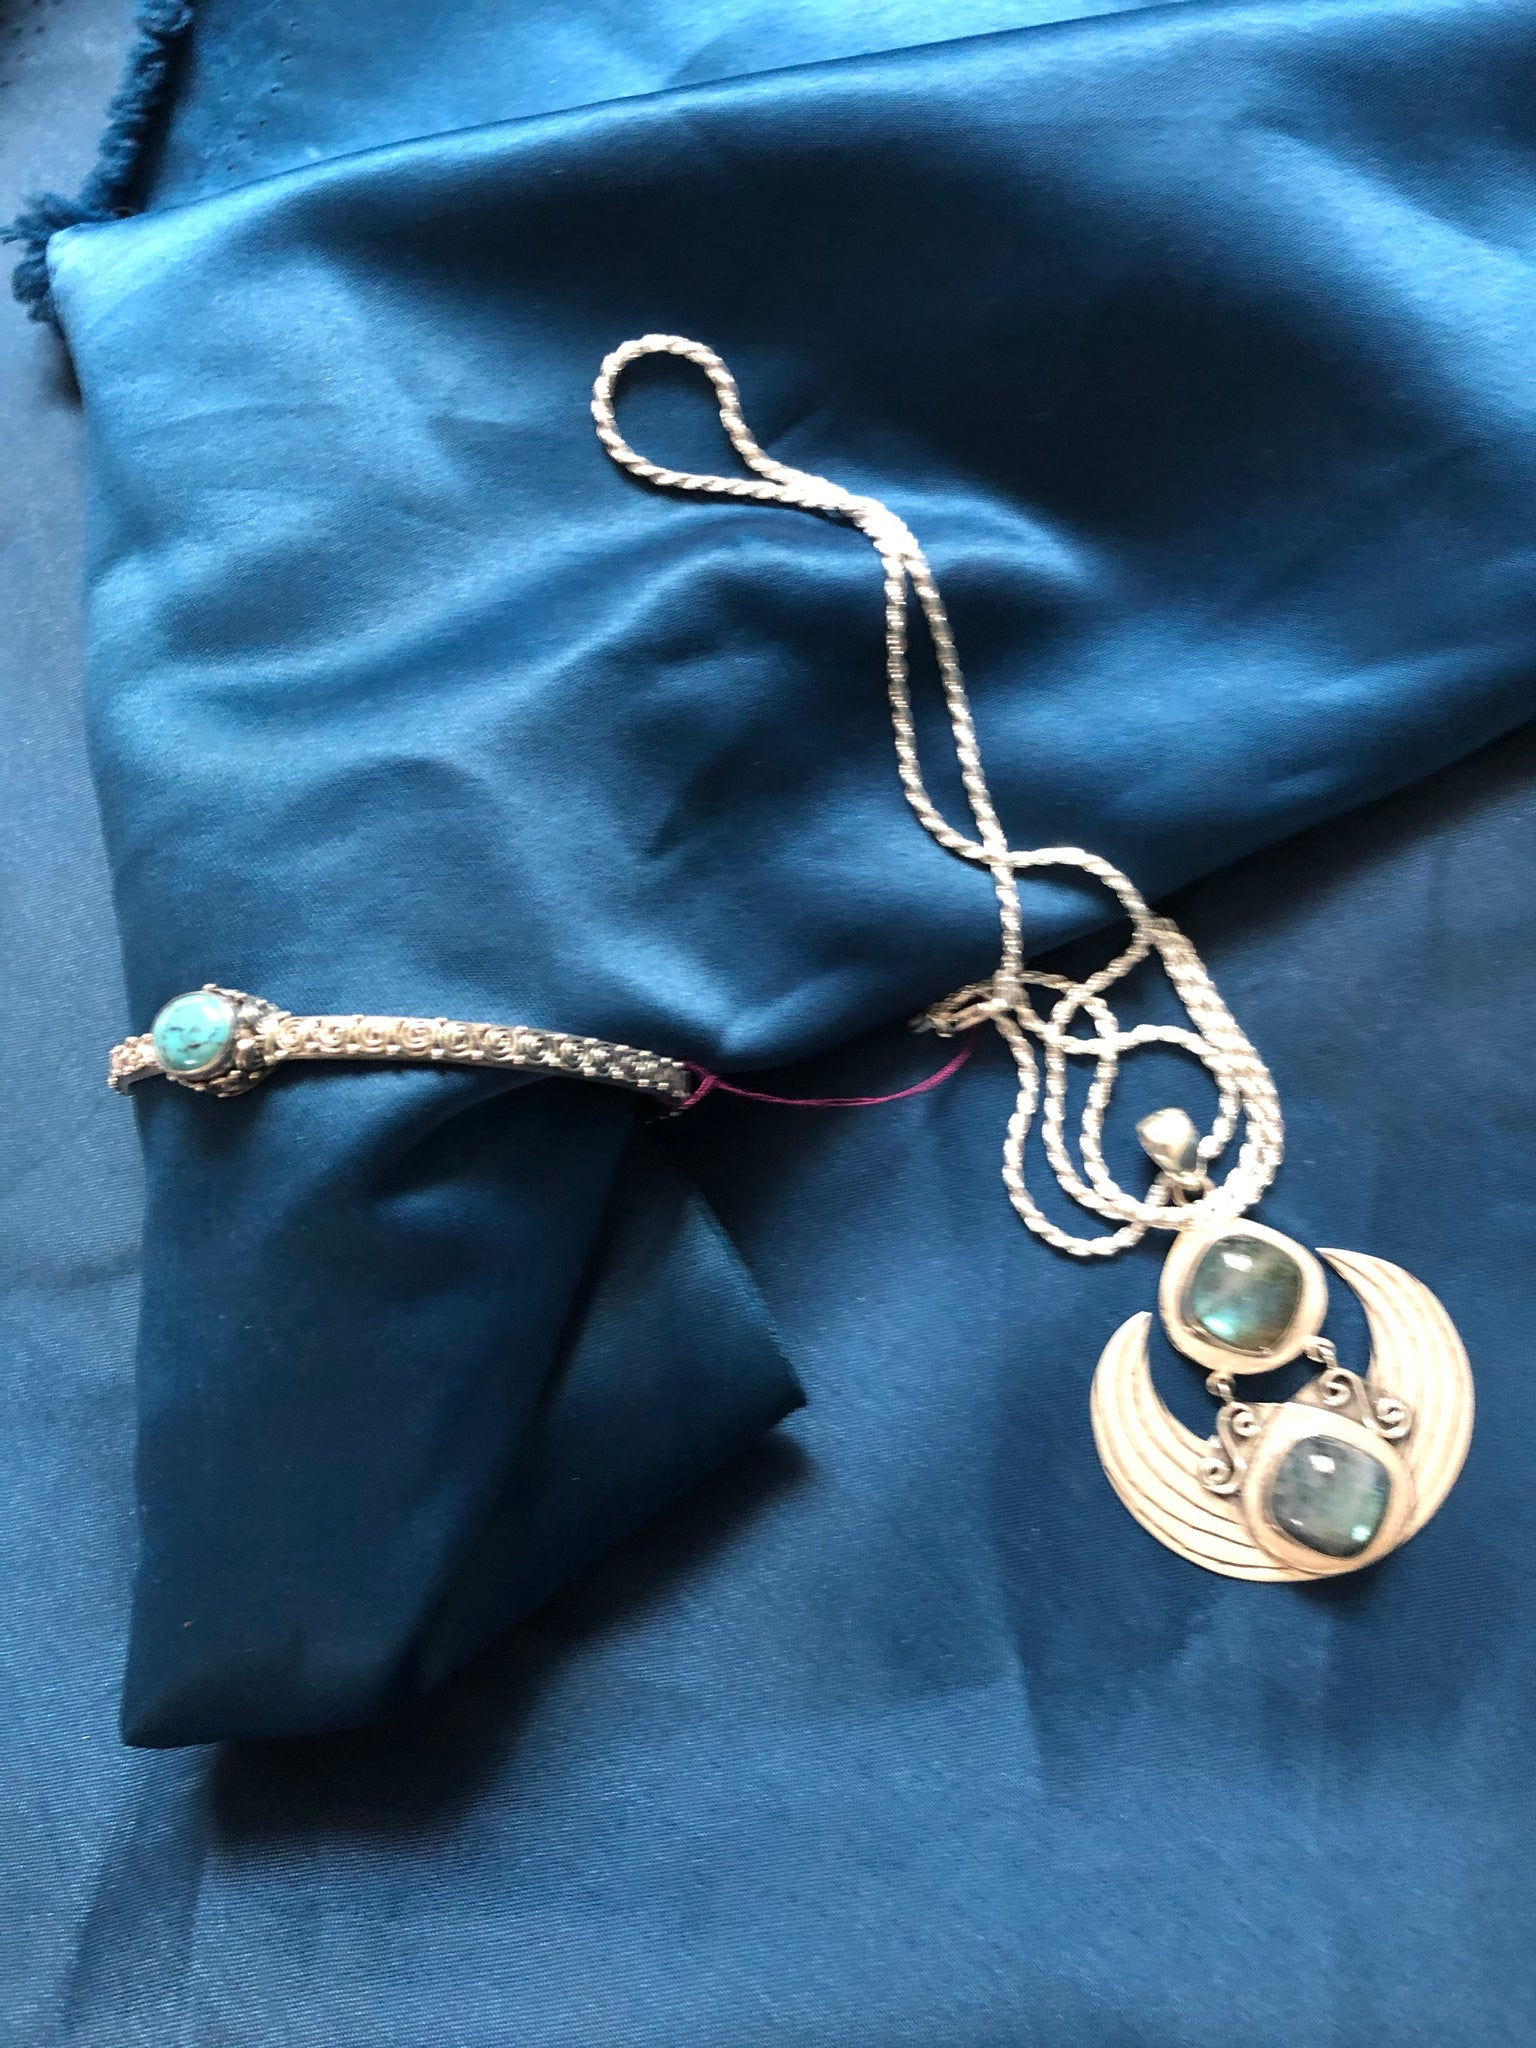 Luna Atlantica Set -  Bracelet and Necklace with Silver Chain